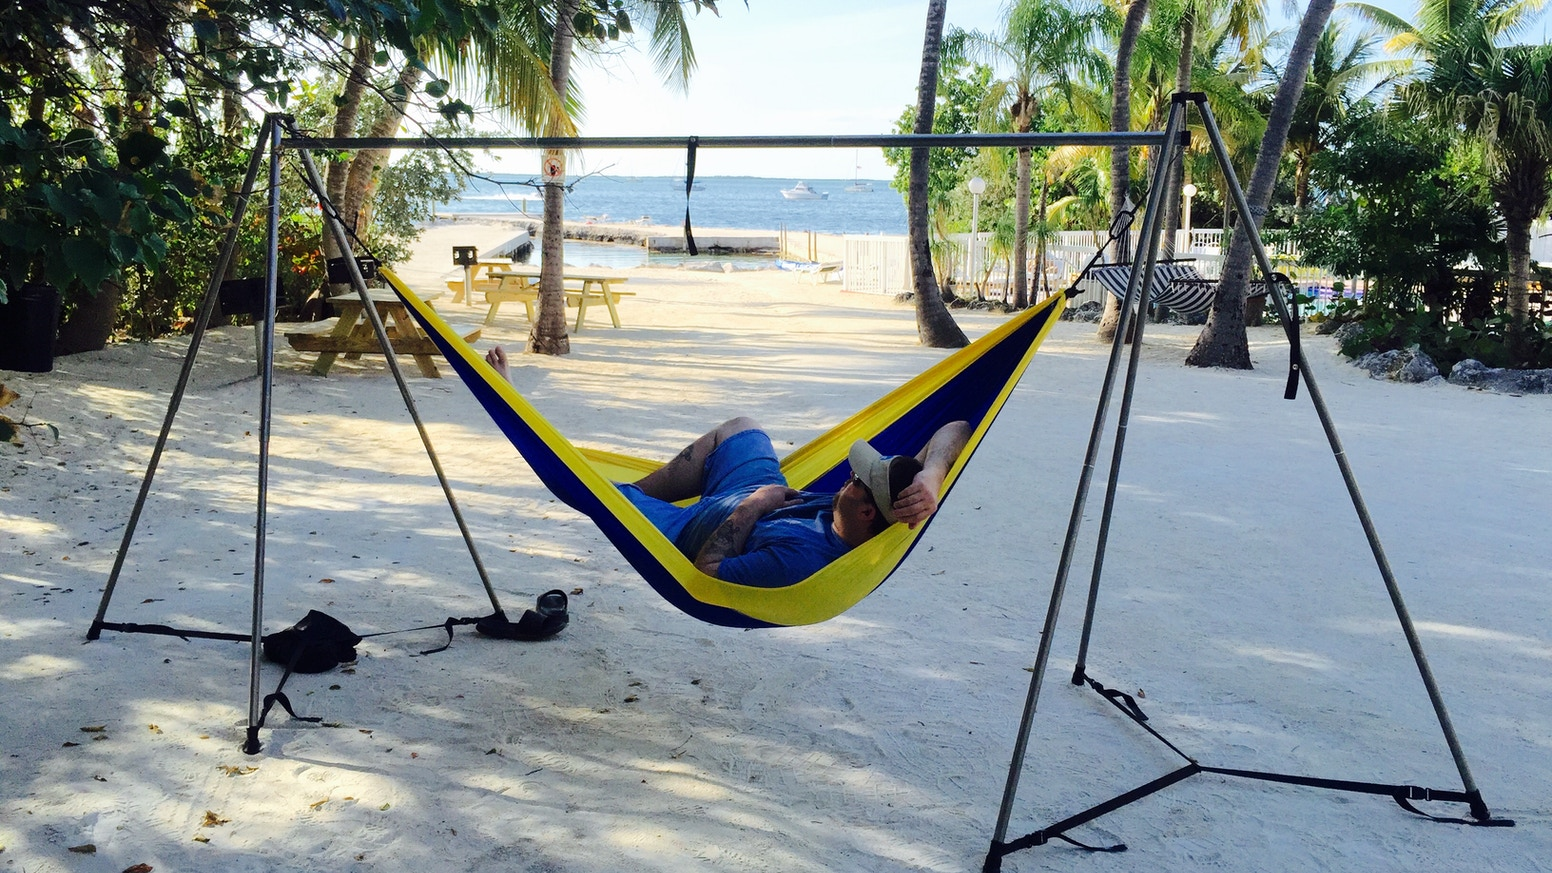 You Can Hammock Anywhere Now With The Worlds Strongest Easiest And Lightest Portable Stand